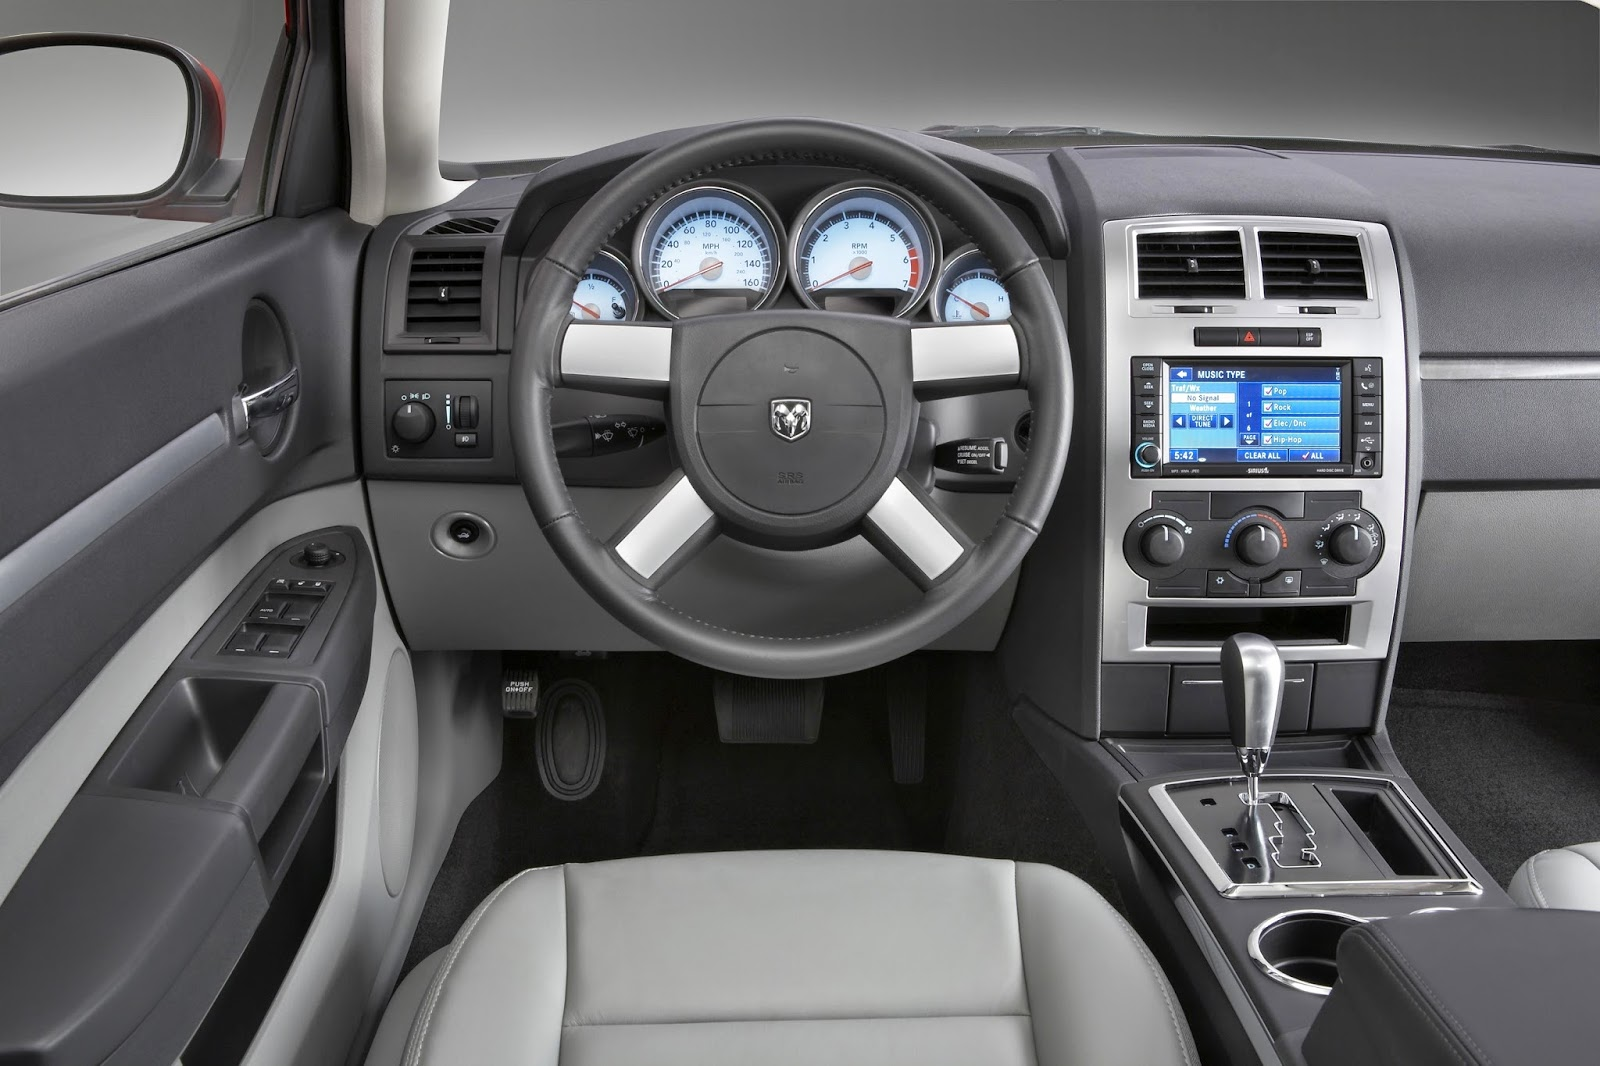 dodge charger auto best reasons rt used should i buy top picture a news to autoguide interior com